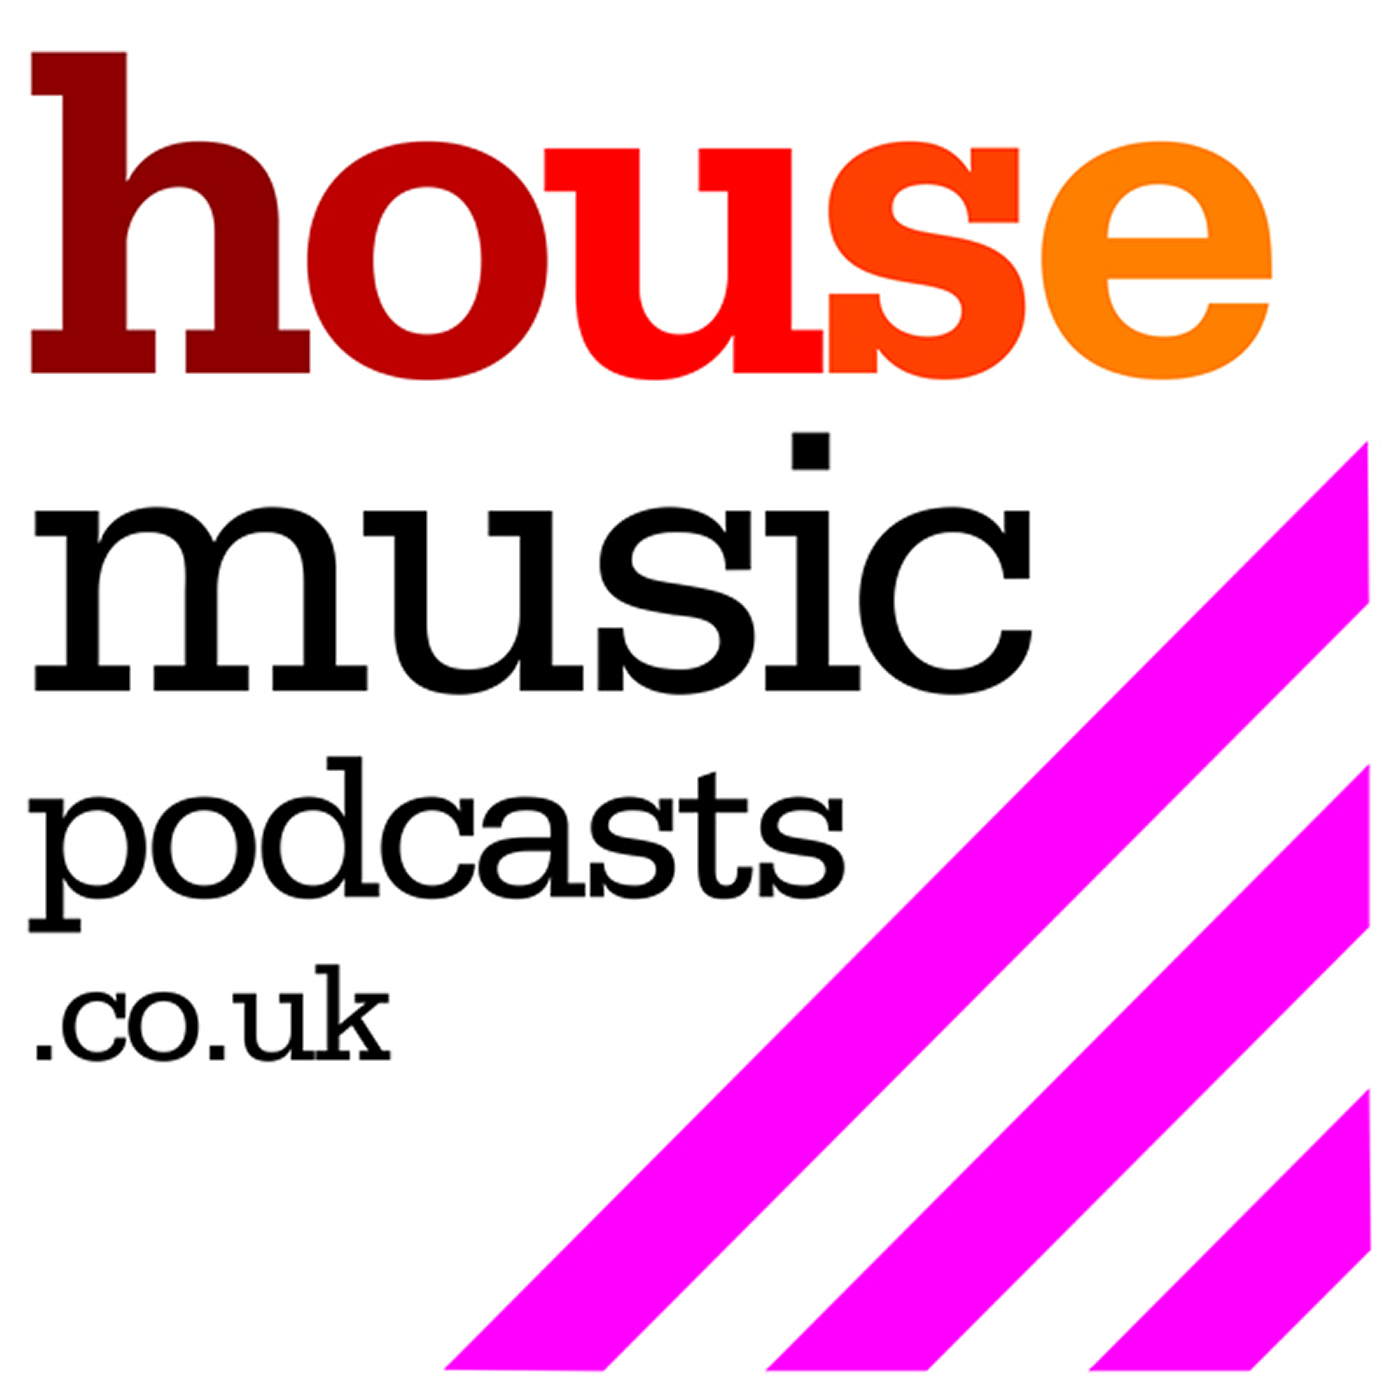 Steven Stone – House Music Podcasts